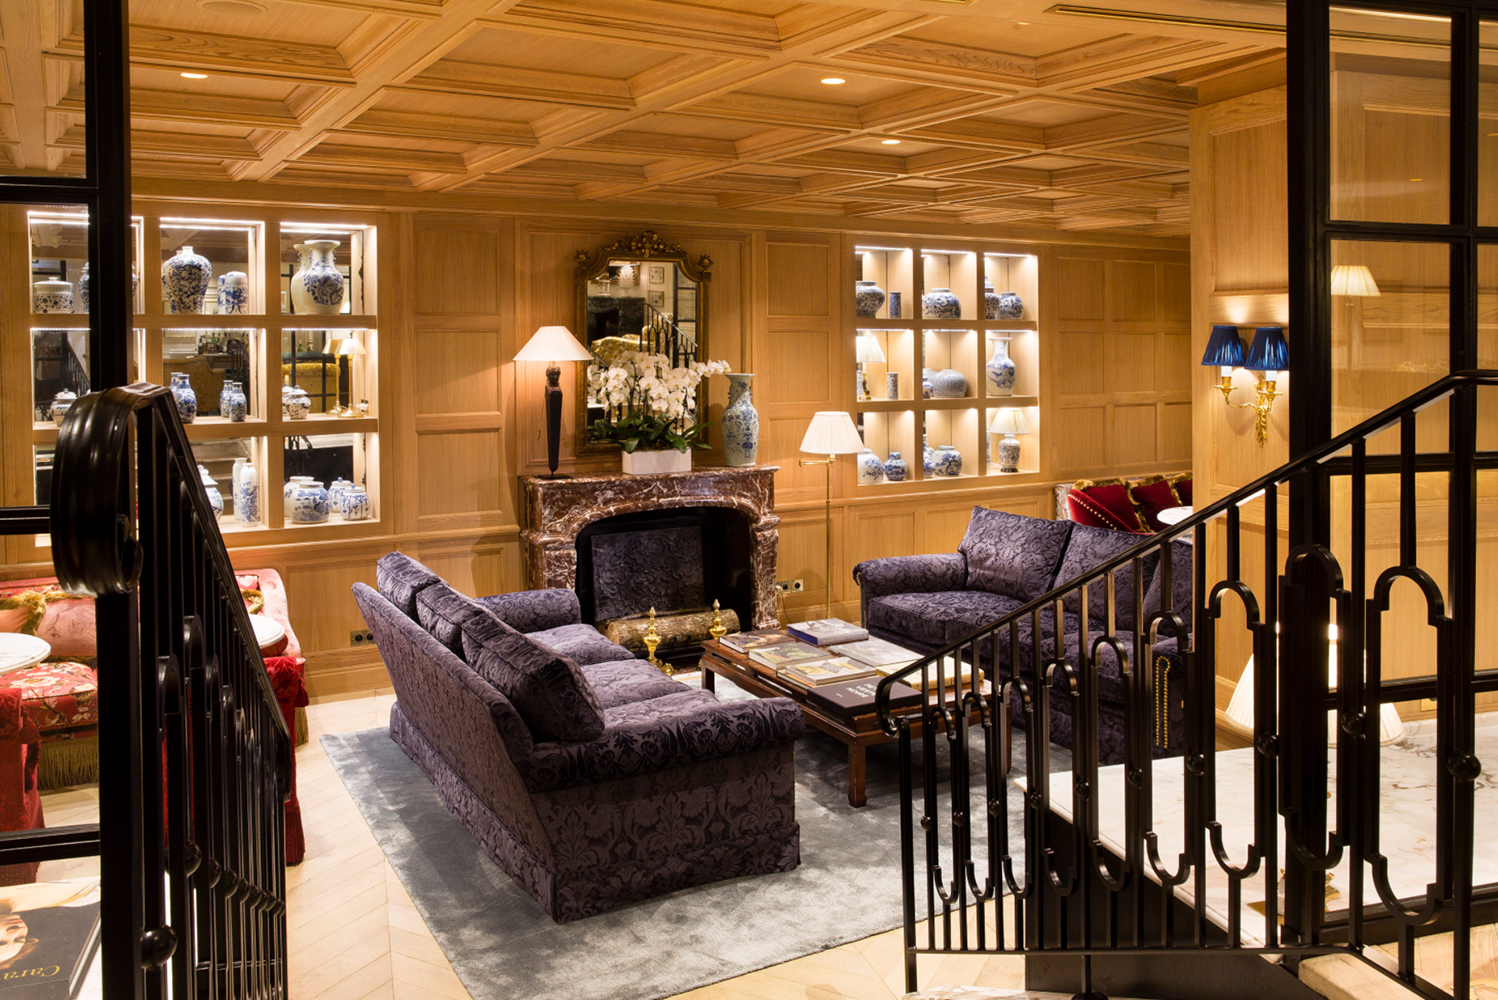 For the ground floor lounges, Gonzalez placed large armchairs and sofas, paintings and drawings, bookcases and trims.